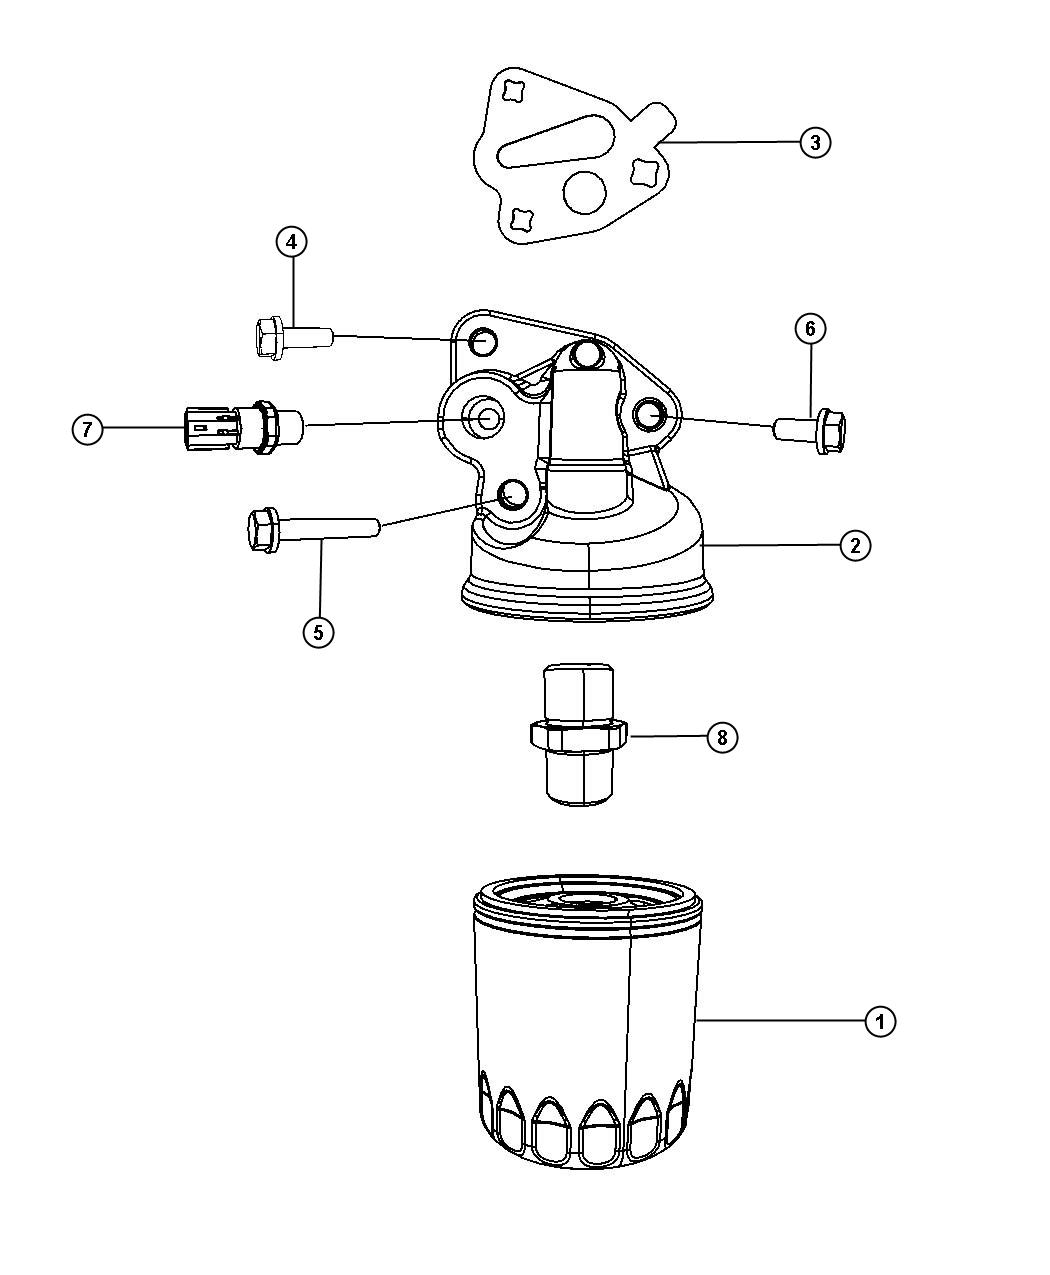 Chrysler Pacifica Engine Oil Filter, Adapter And Splash Guard